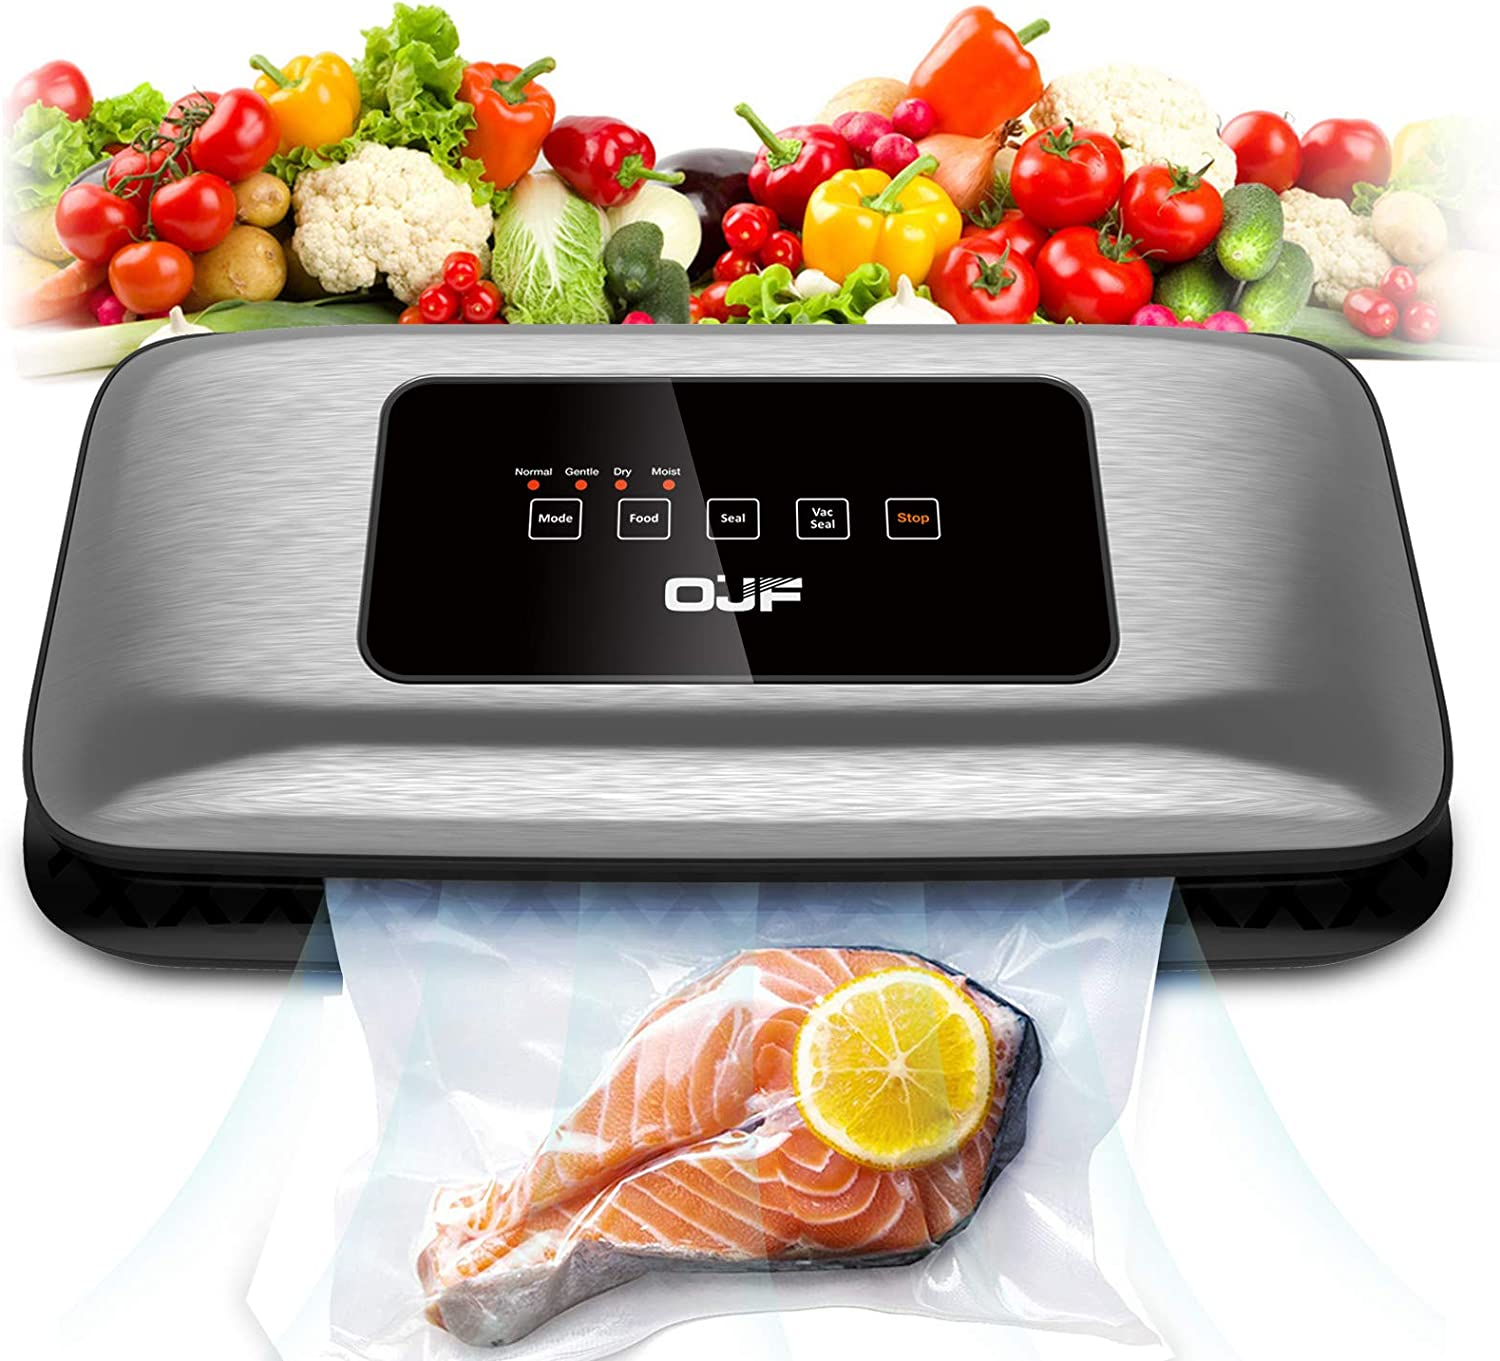 OJF Vacuum Sealer Machine, Compact Automatic Food Sealer for Food Savers, Normal Gentle Dry Moist Food Modes, Easy to Clean, Led Indicator Light, Starter Kit Included, Black